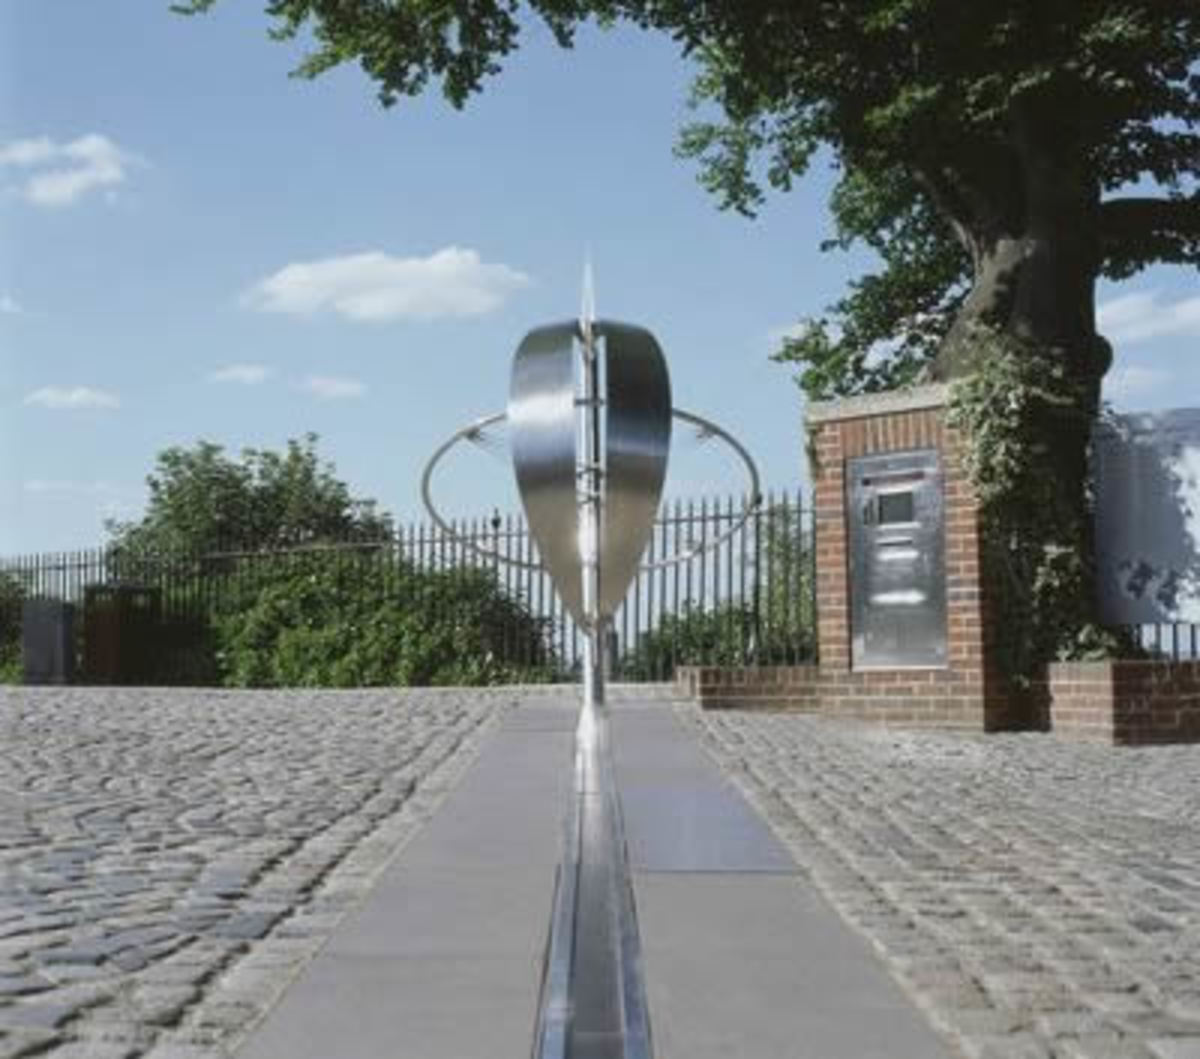 The 0 Degree Longitude (or the Prime Meridian) passing through the Royal Observatory at Greenwich in London, England.